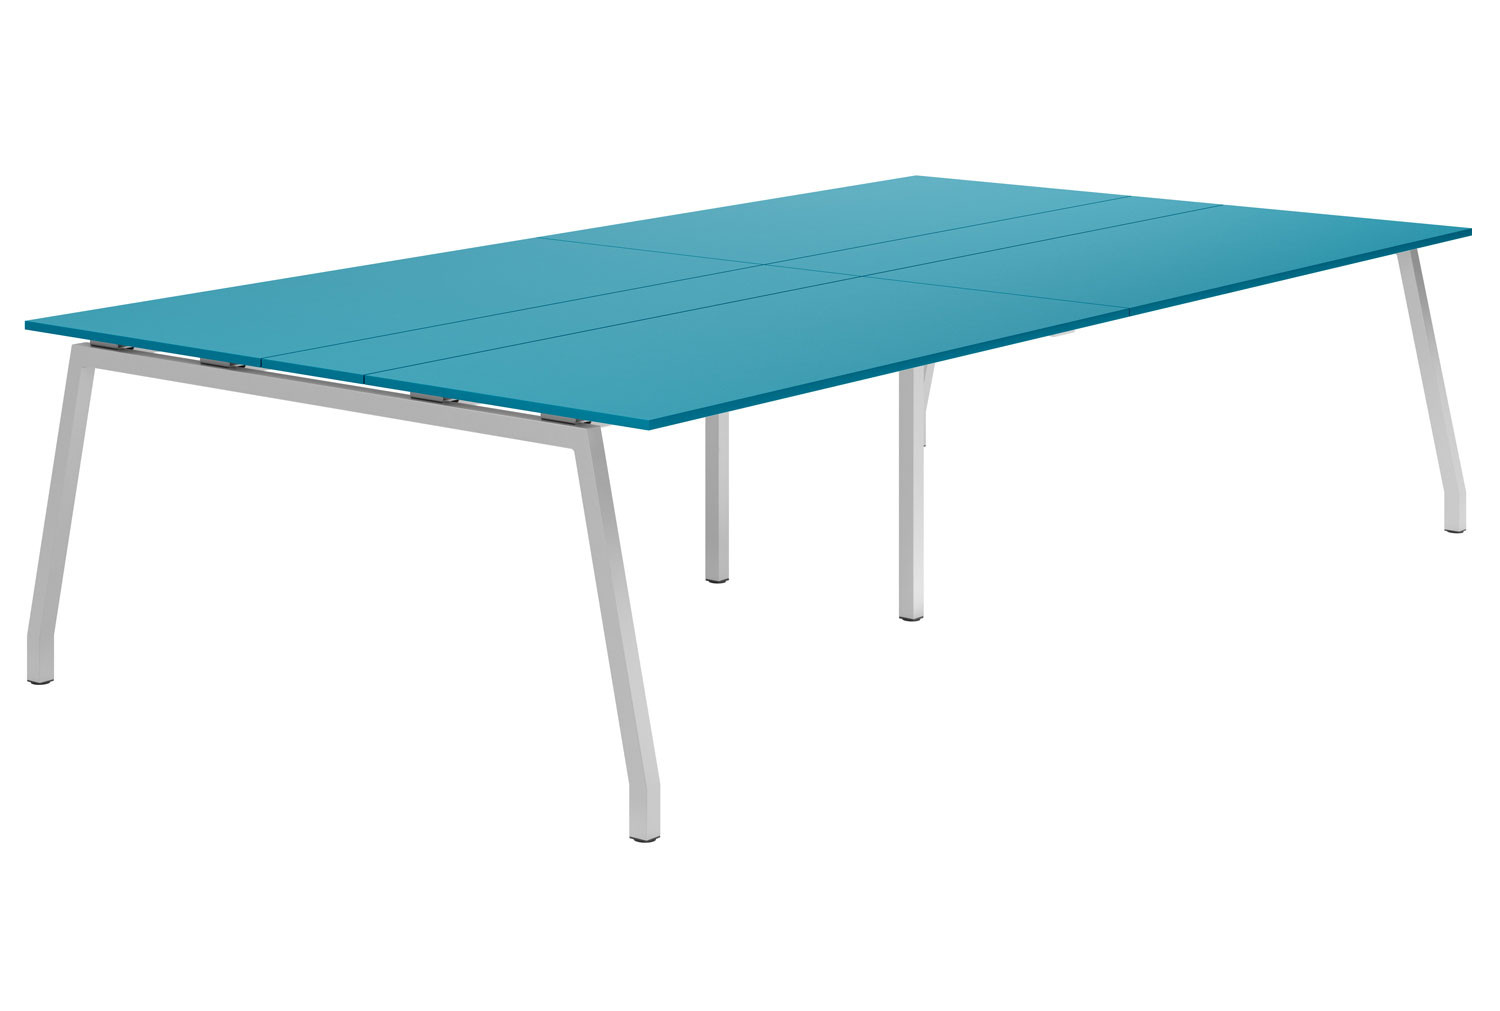 Campos A-Frame 10-12 Person Meeting Table (Light Blue)